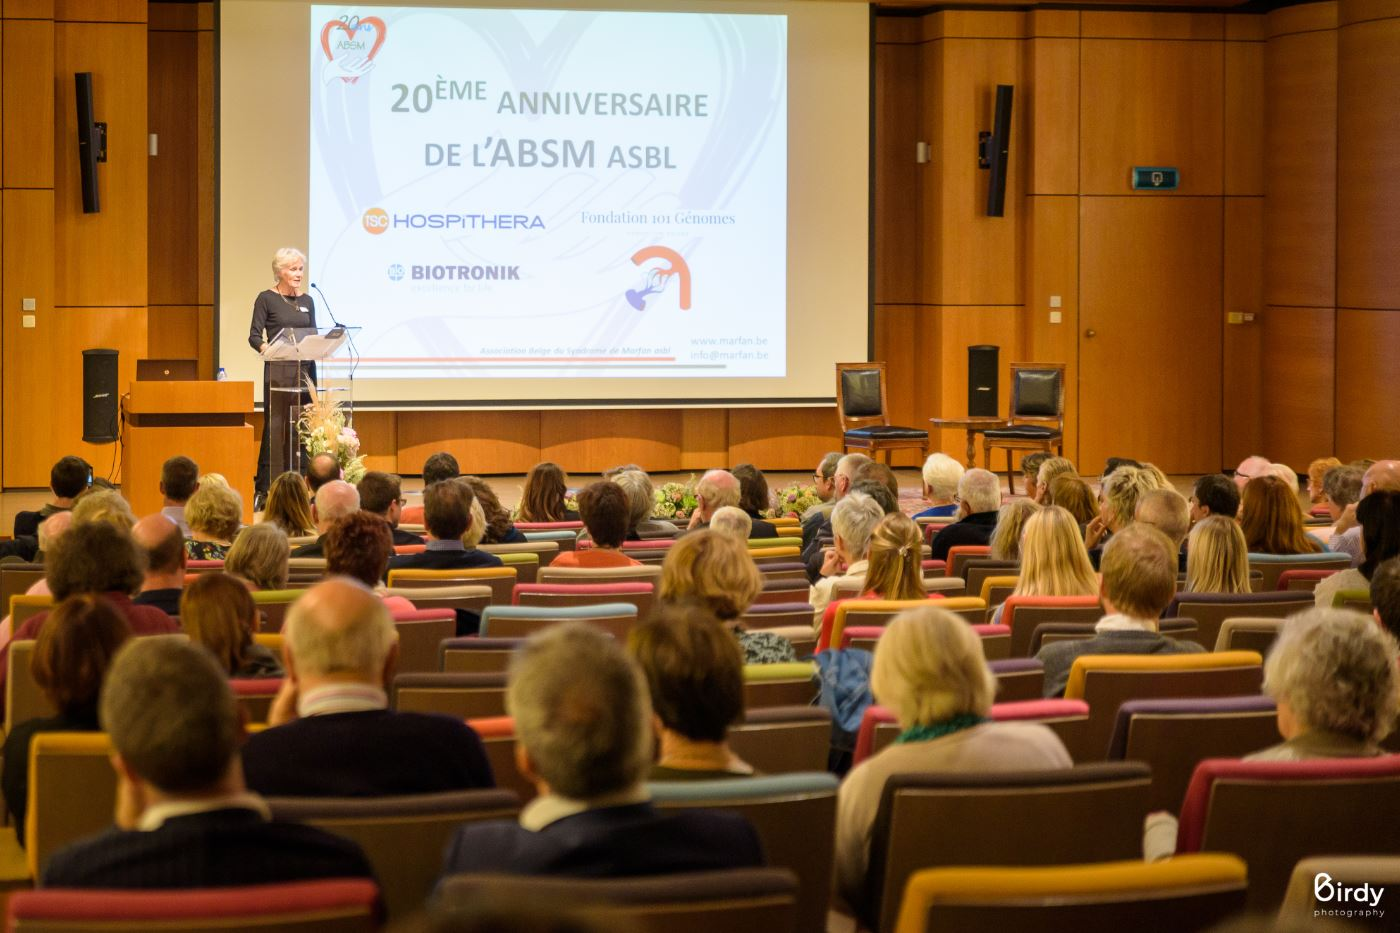 Happy 20 years to the Belgian Association of Marfan Syndrome (ABSM)!